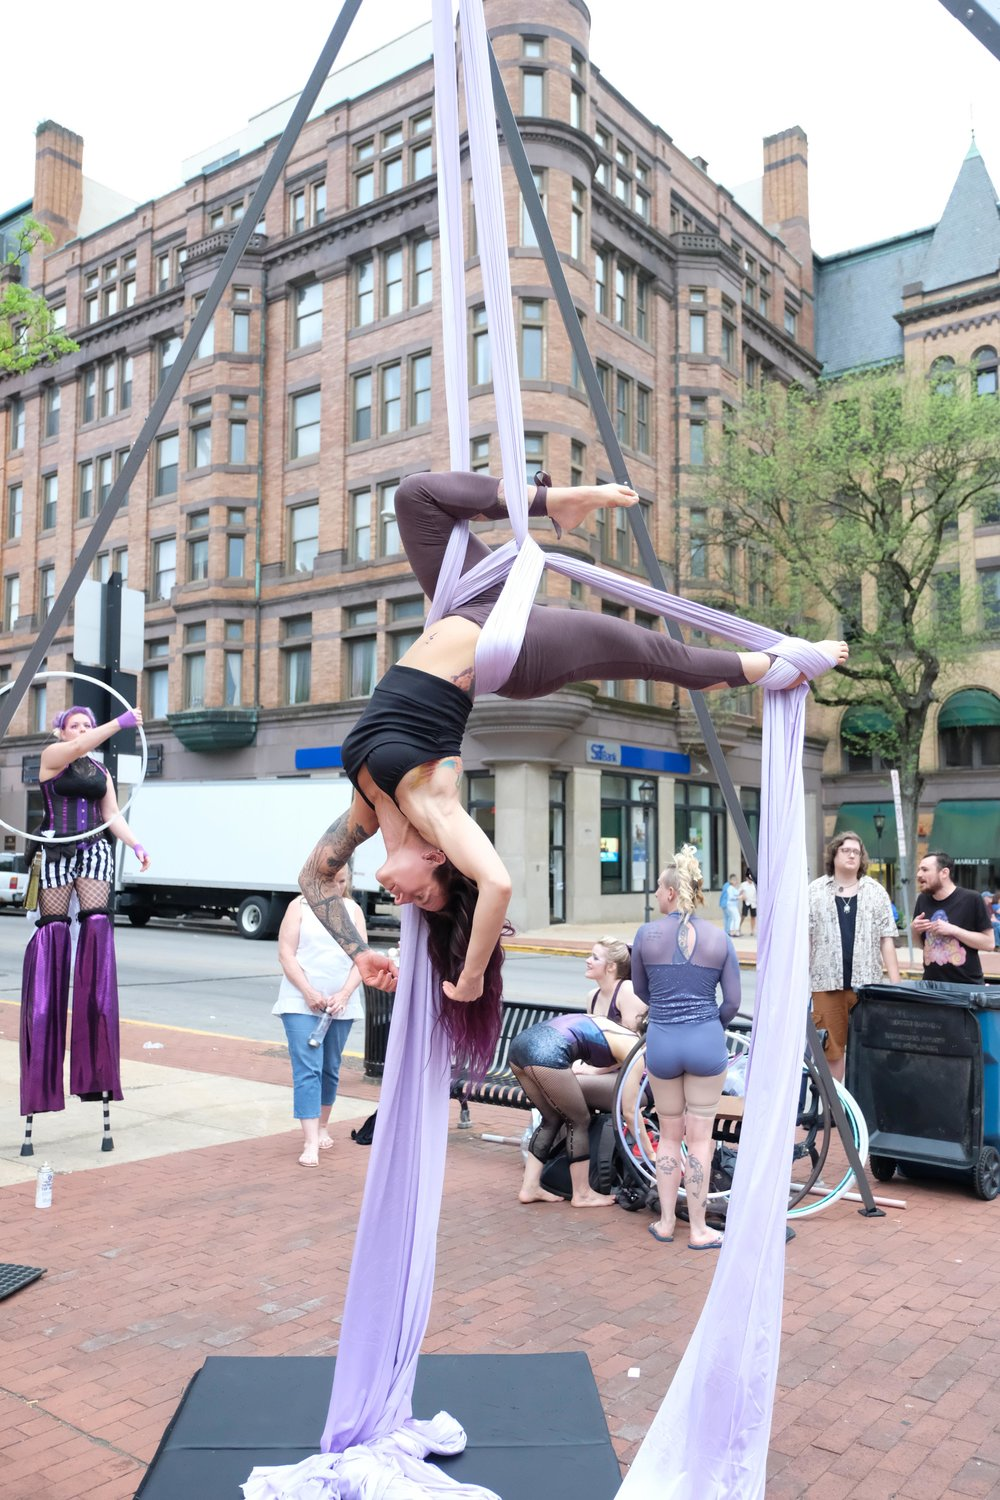 Artists like the REnedgade Collective, shown performing during First Friday, are definitely Edgy. Do you know any others?